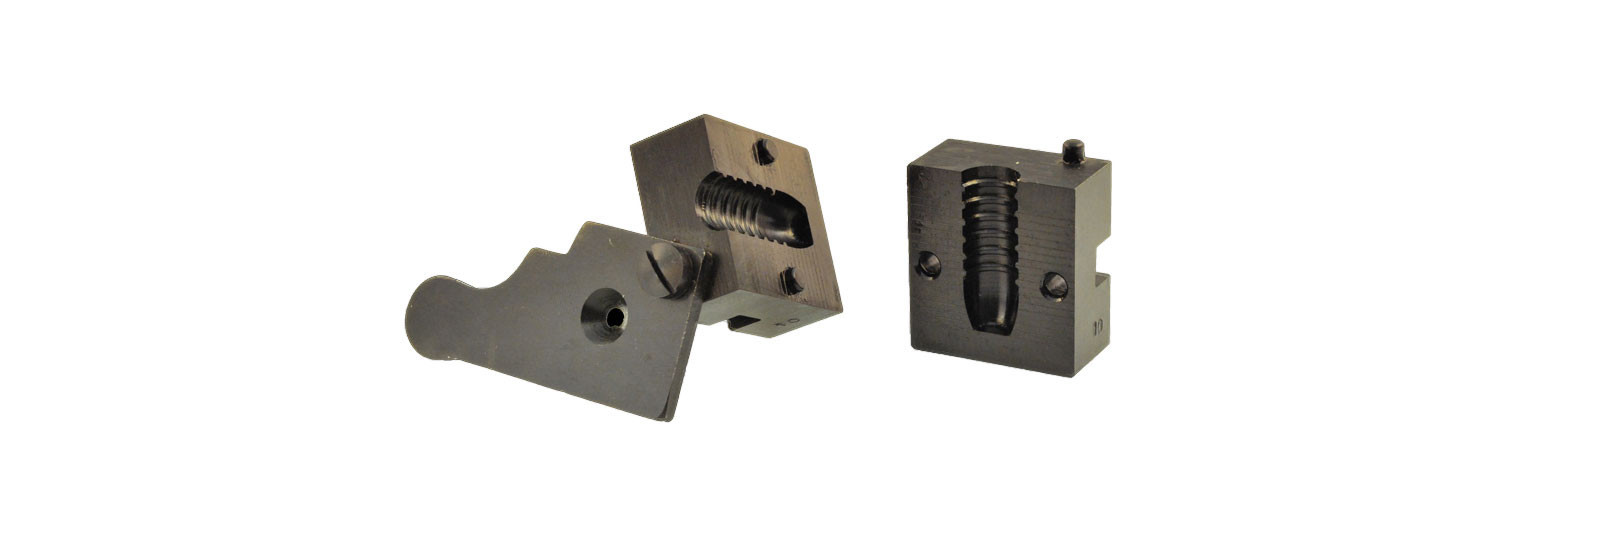 Bullet mould block with 1 cavity - long bullet